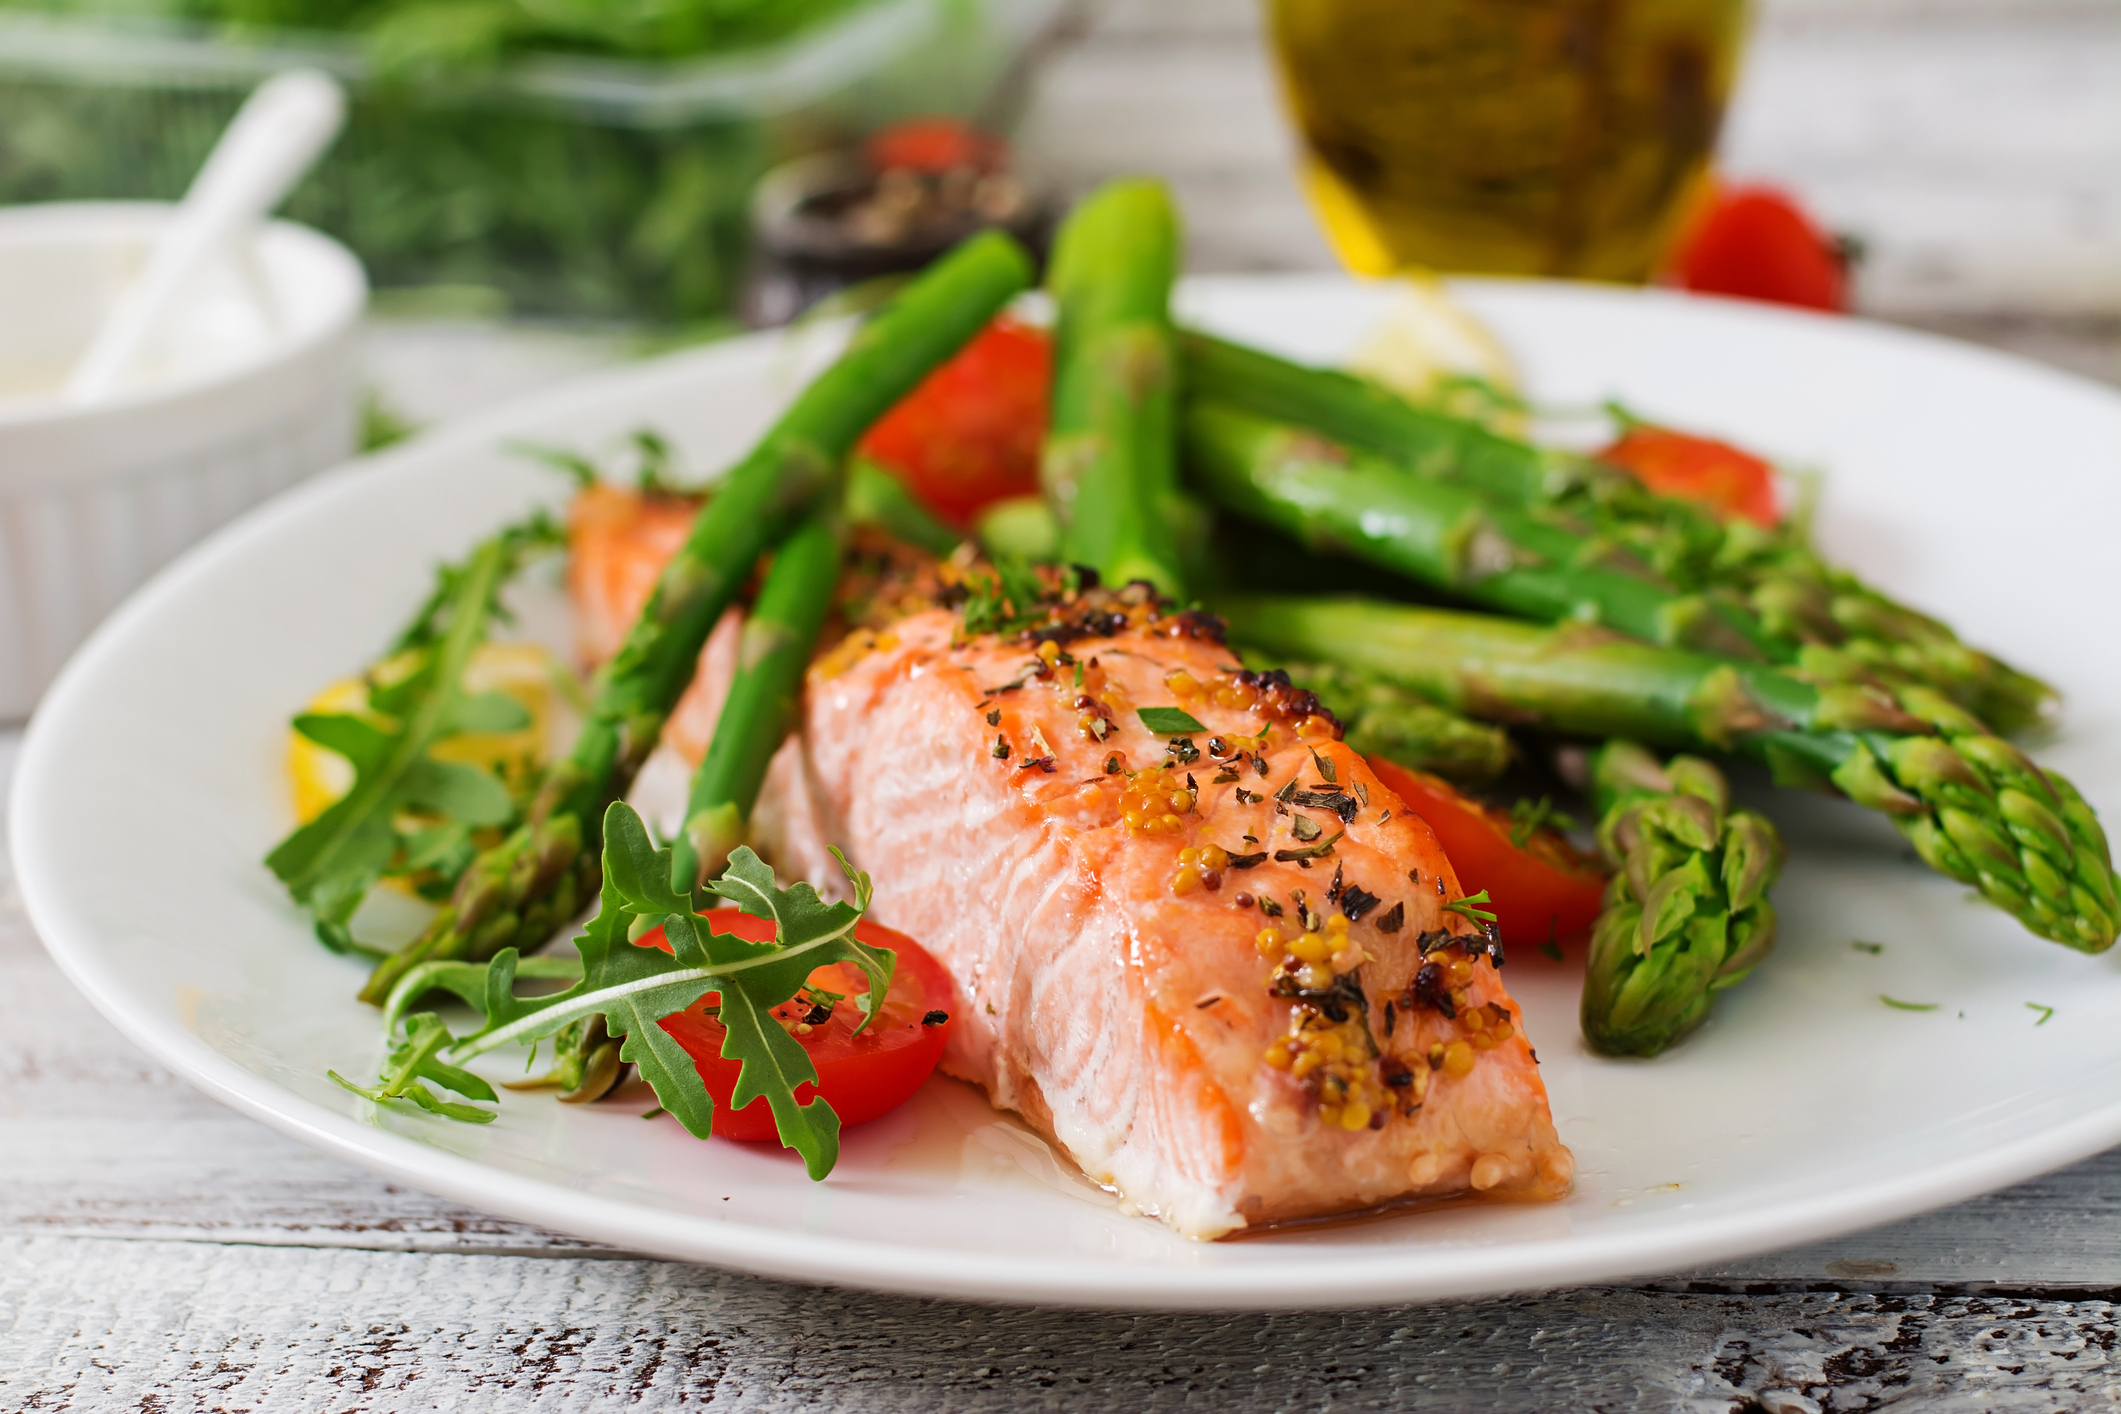 Baked salmon garnished with asparagus and tomatoes with herbs (Thinkstock/PA)